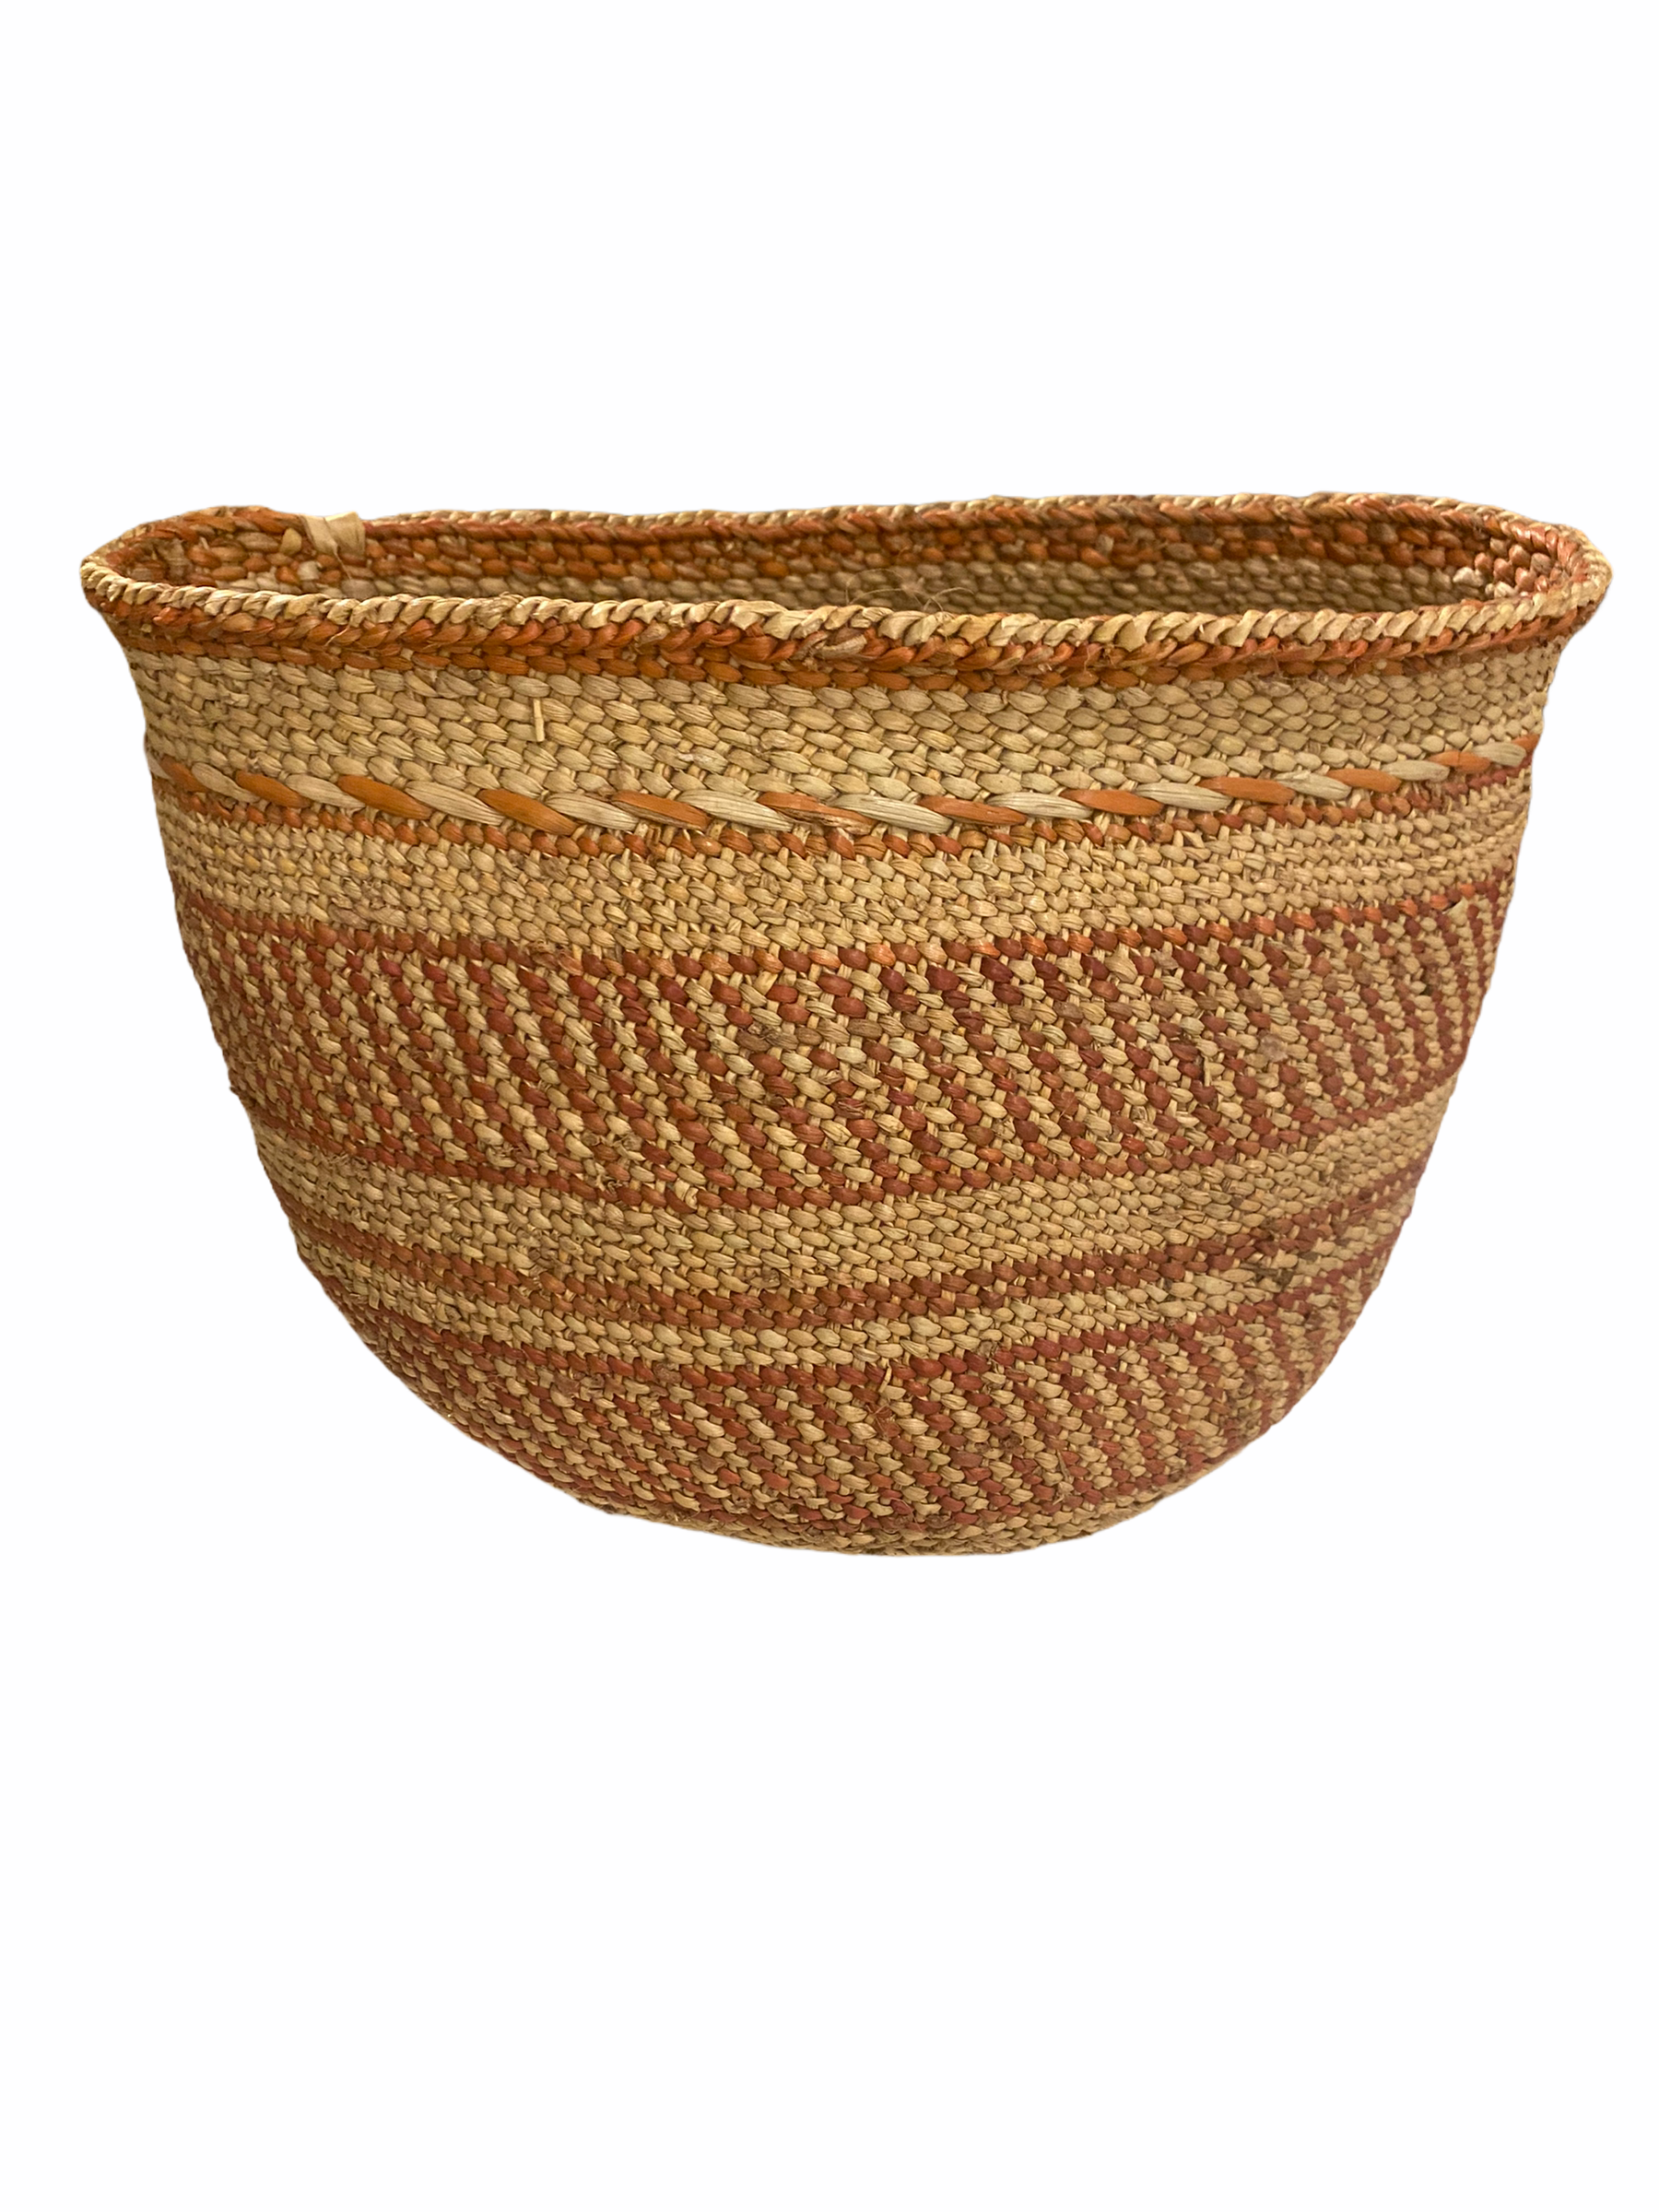 Iringa Basket - Brown Striped - XS